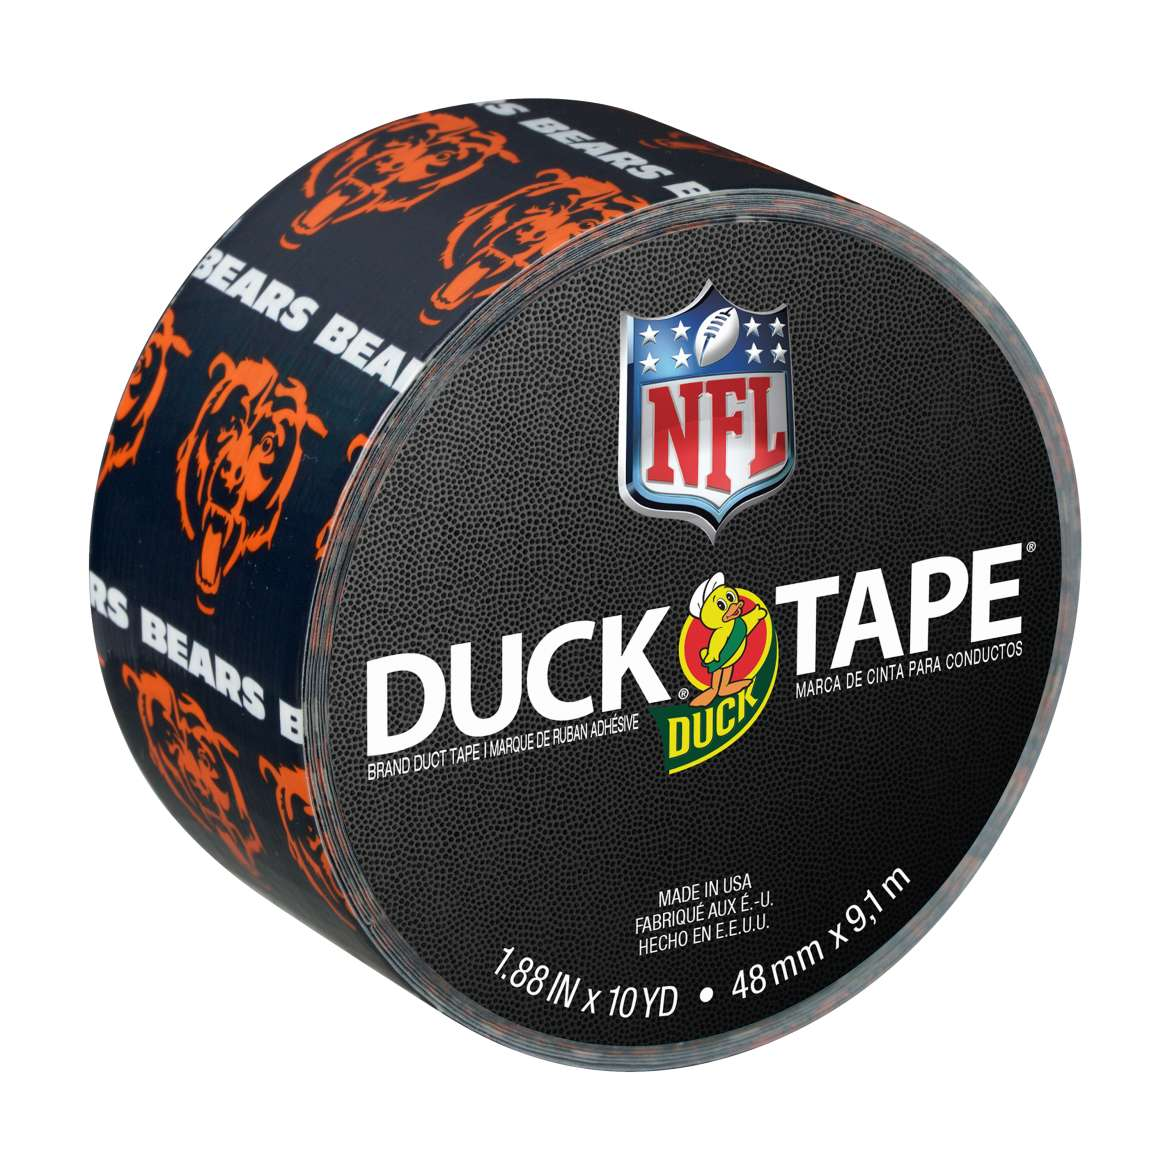 "Duck Brand Duct Tape, NFL Duck Tape, 1.88"" x 10 yard, Chicago Bears"